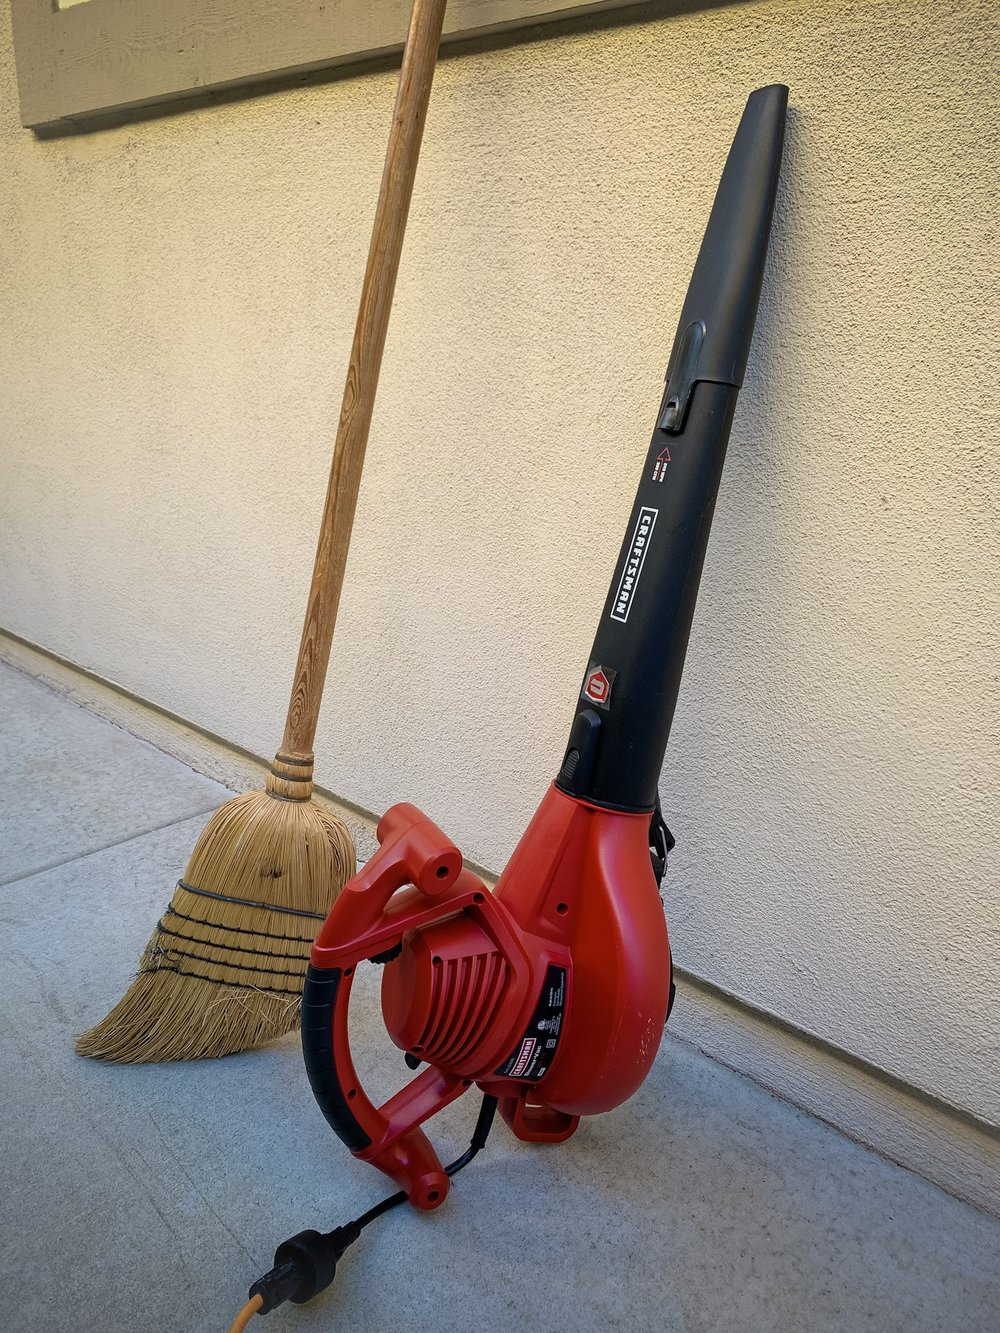 Upgrade - Out with my old broom, in with my new leaf blower. Click to shop